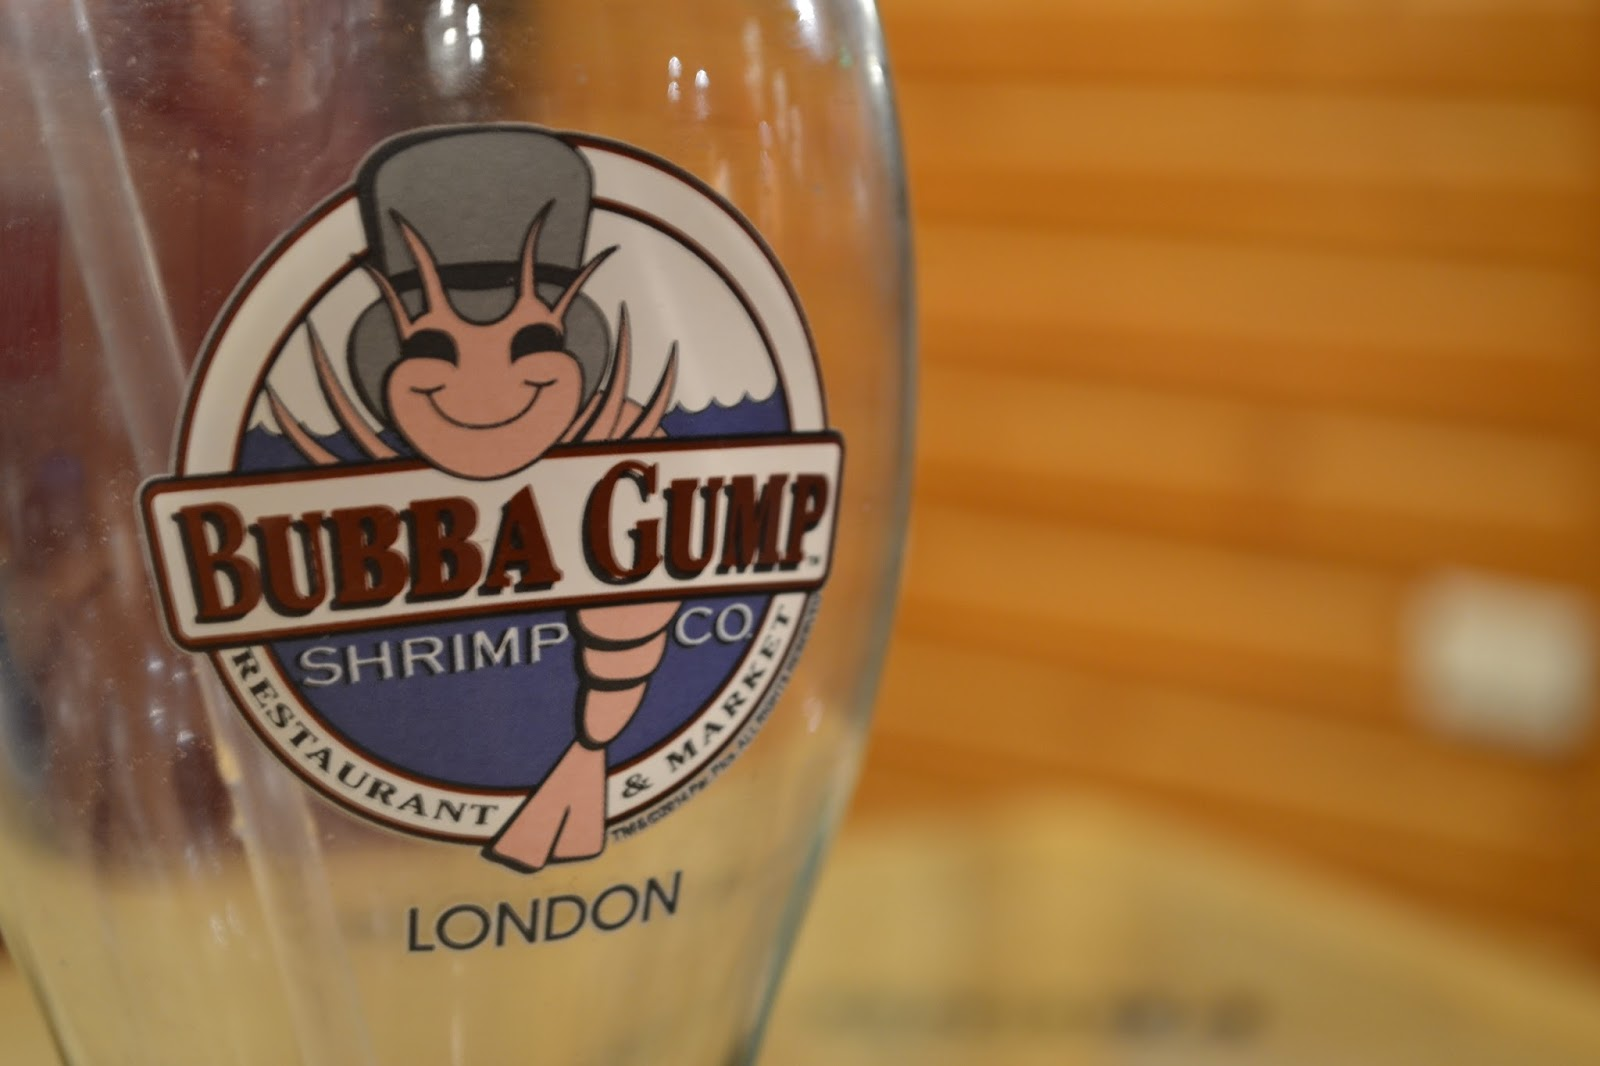 Bubba Gump Review - London